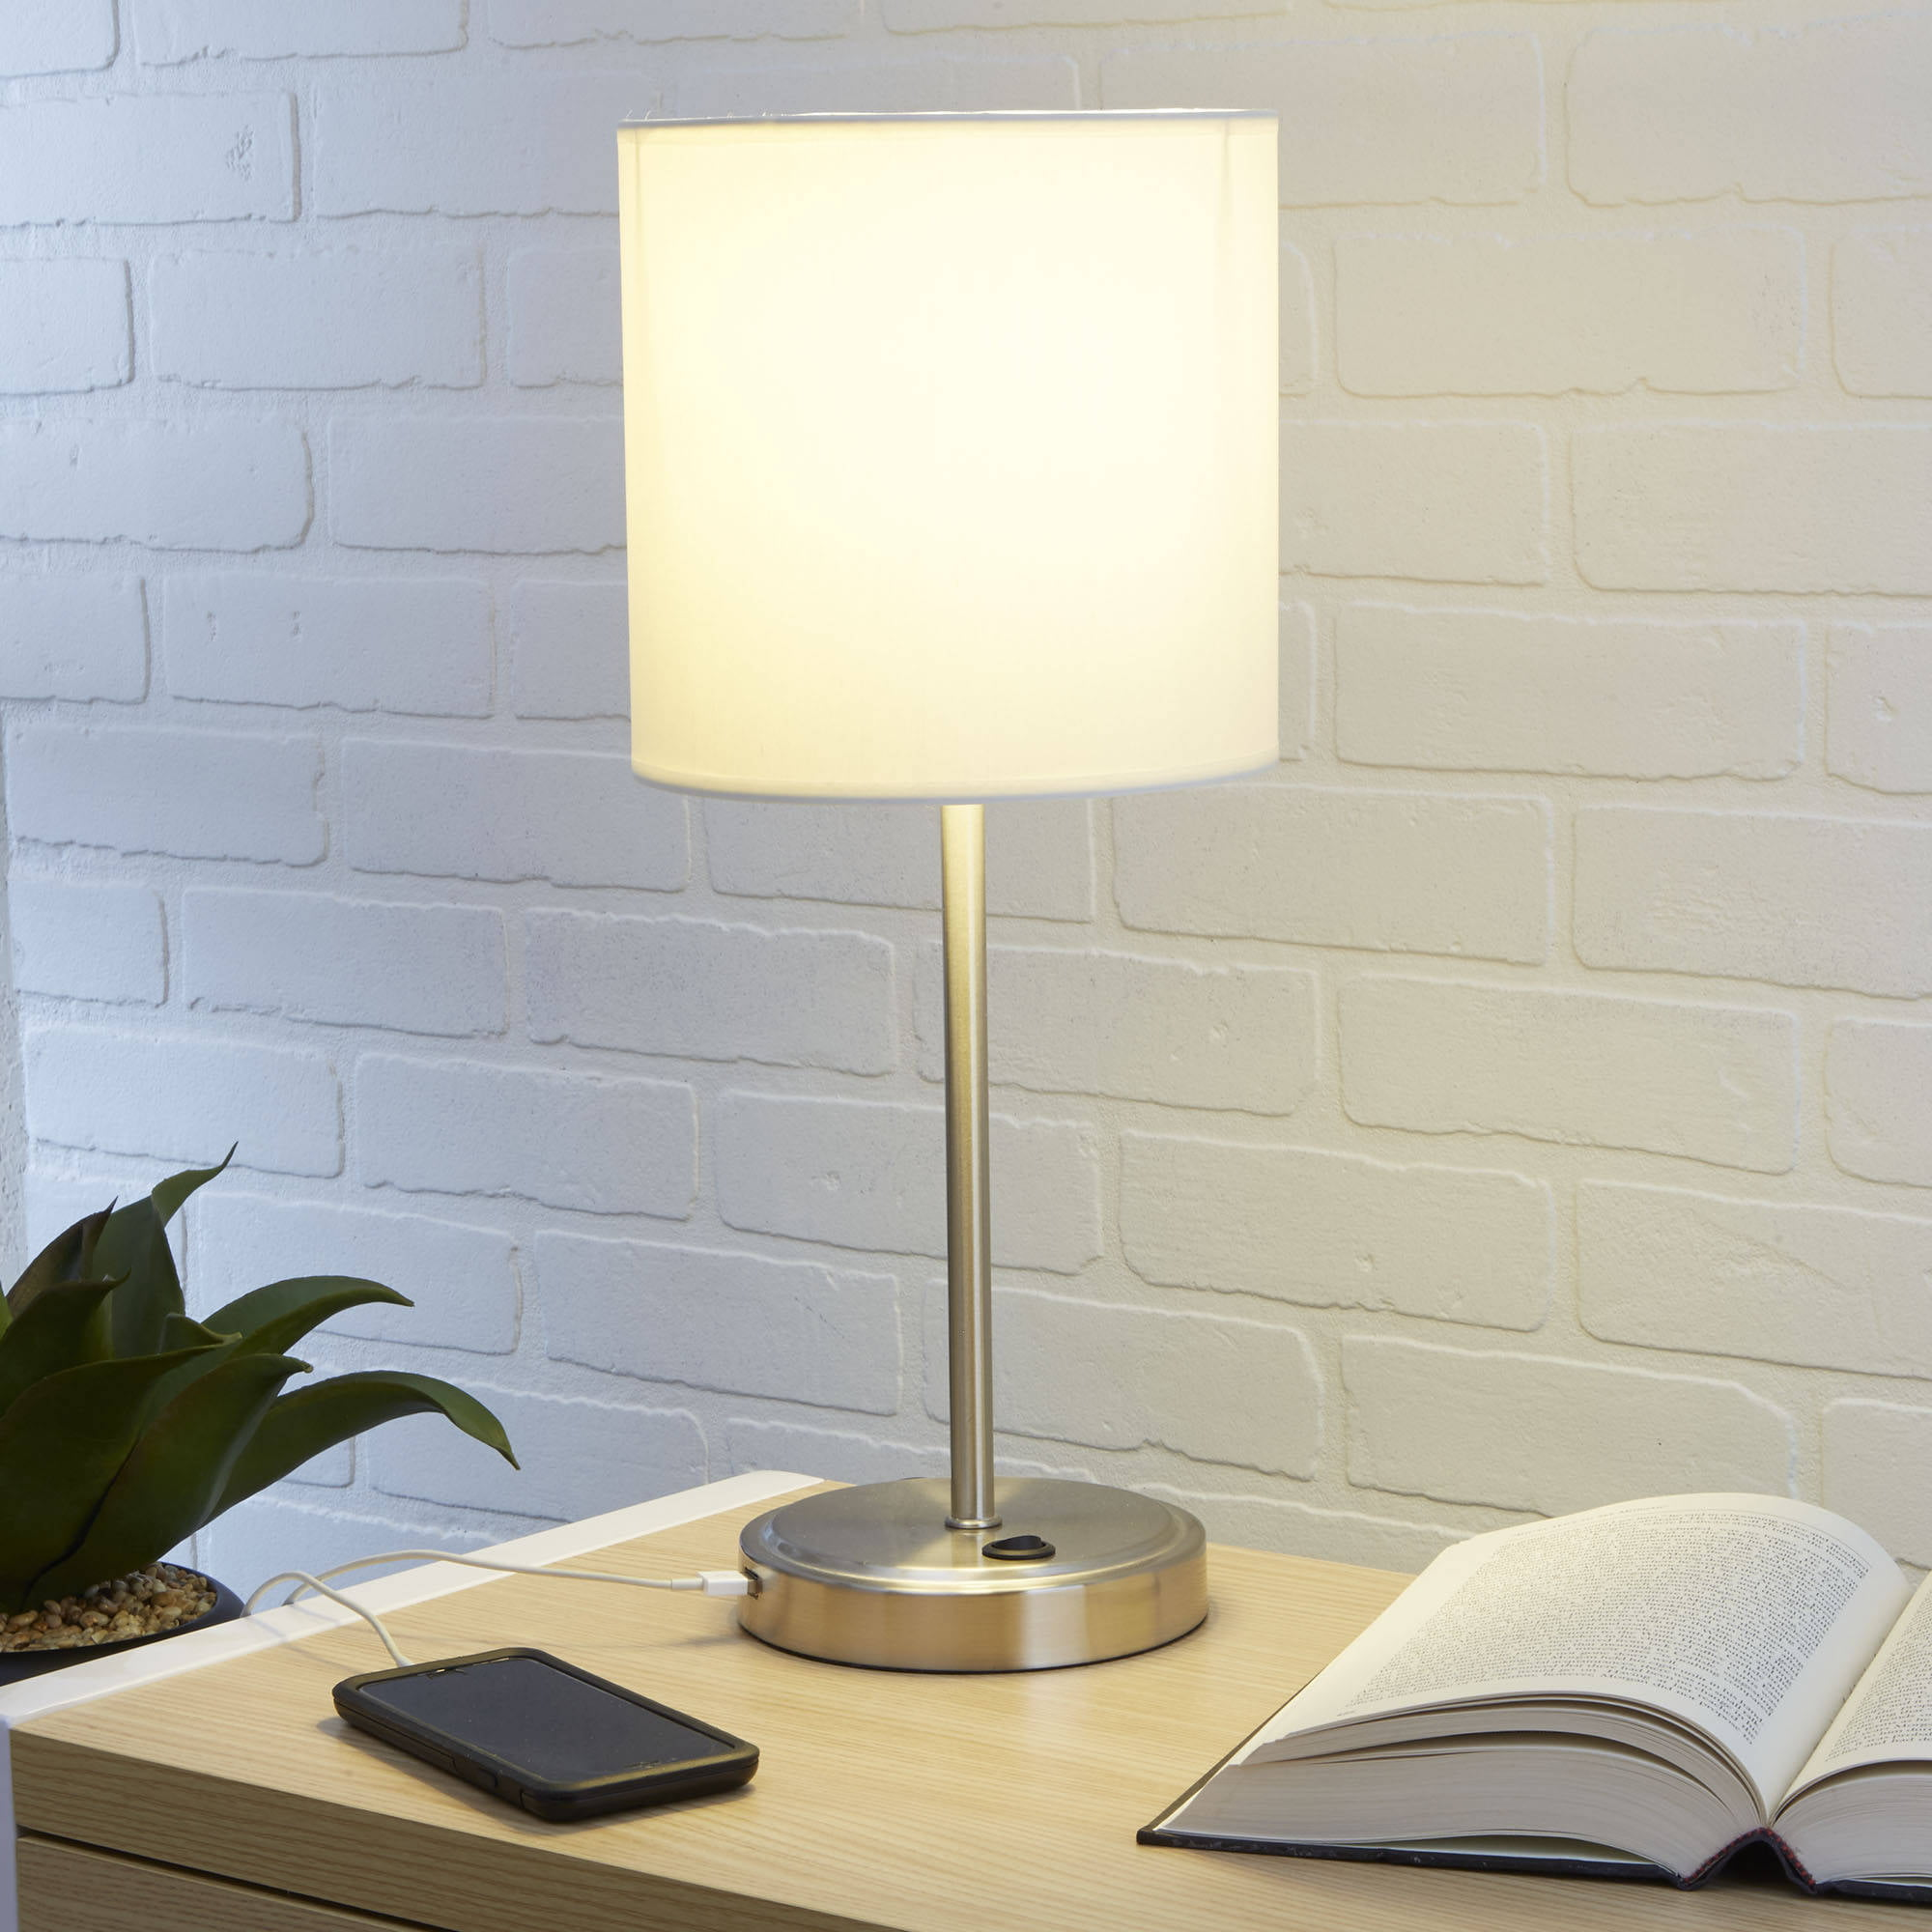 bedroom home decor desk white stick lamp with built in usb. Black Bedroom Furniture Sets. Home Design Ideas